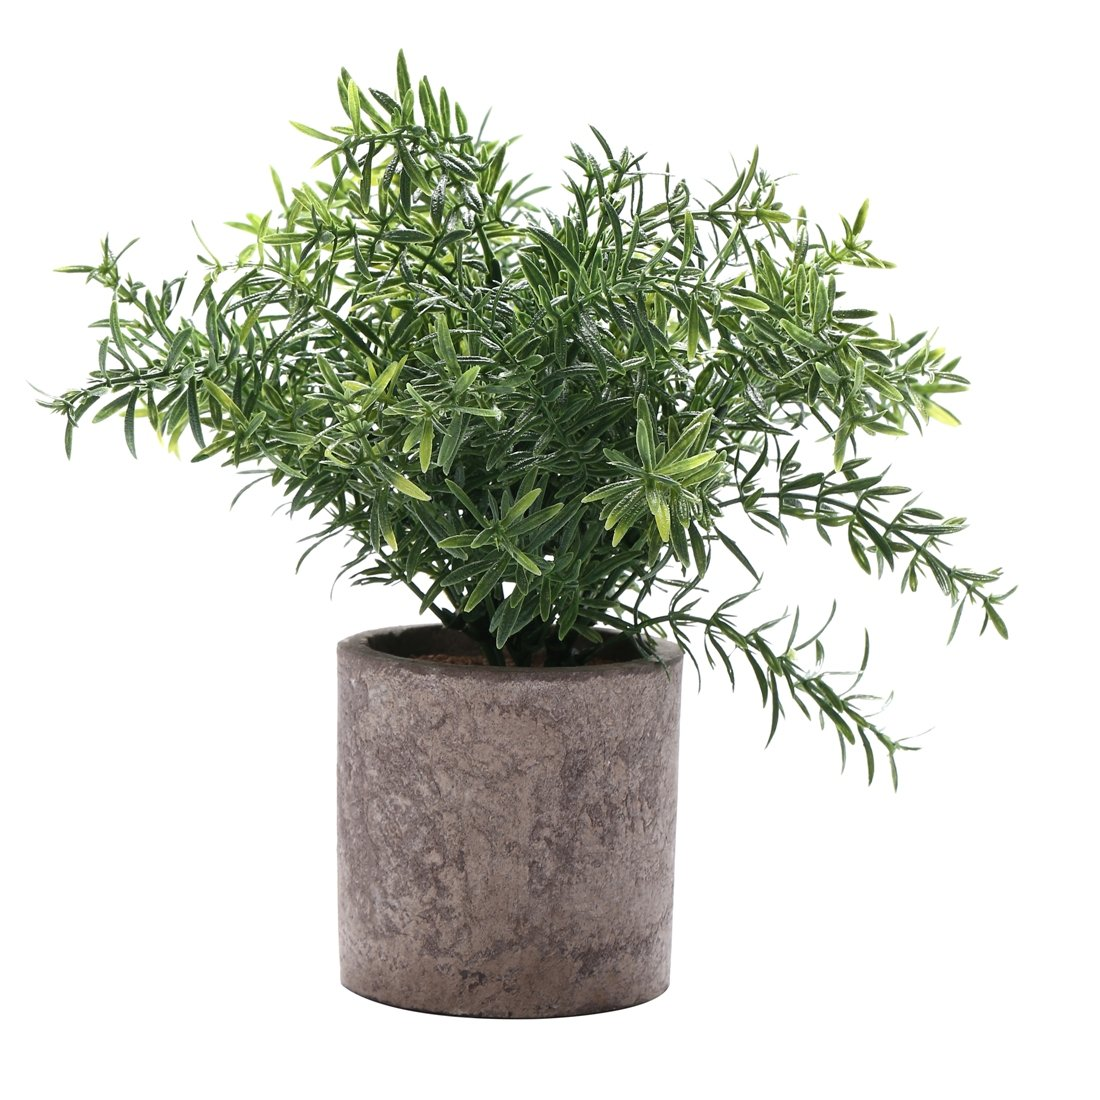 HC STAR Artificial Plant Potted Mini Fake Plant Decorative Lifelike Flower Green Plants - 1101 by HC STAR